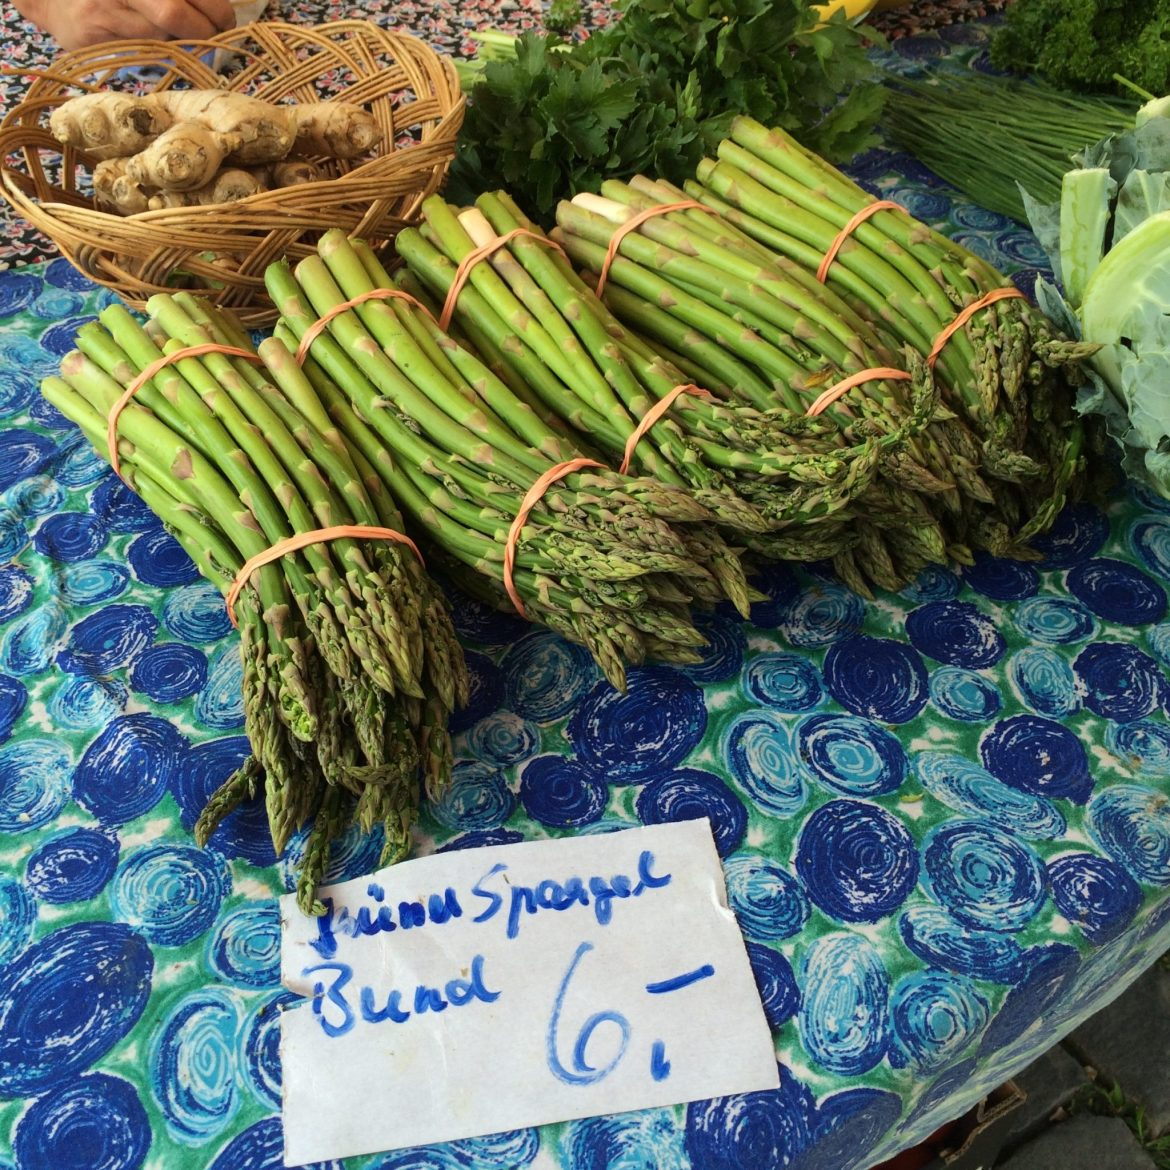 Green asparagus laid out at Speyer farmers' market